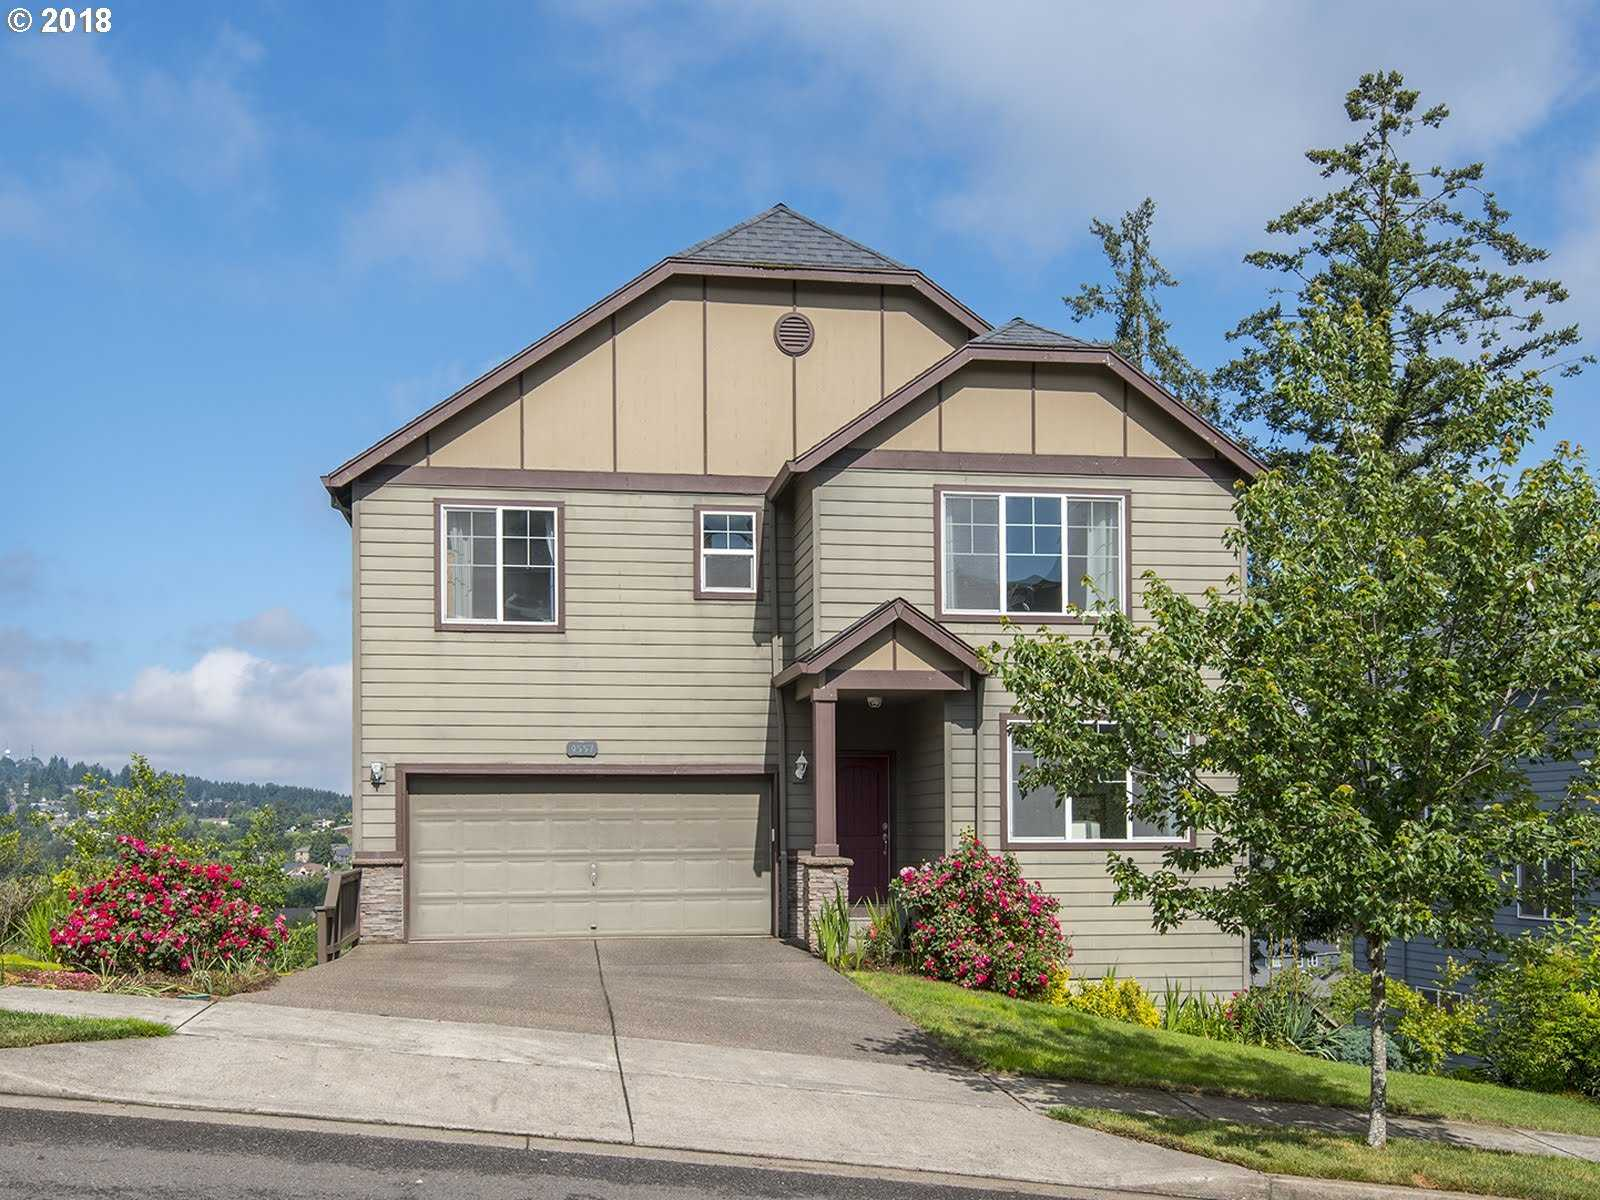 $550,000 - 5Br/4Ba -  for Sale in Happy Valley, Happy Valley